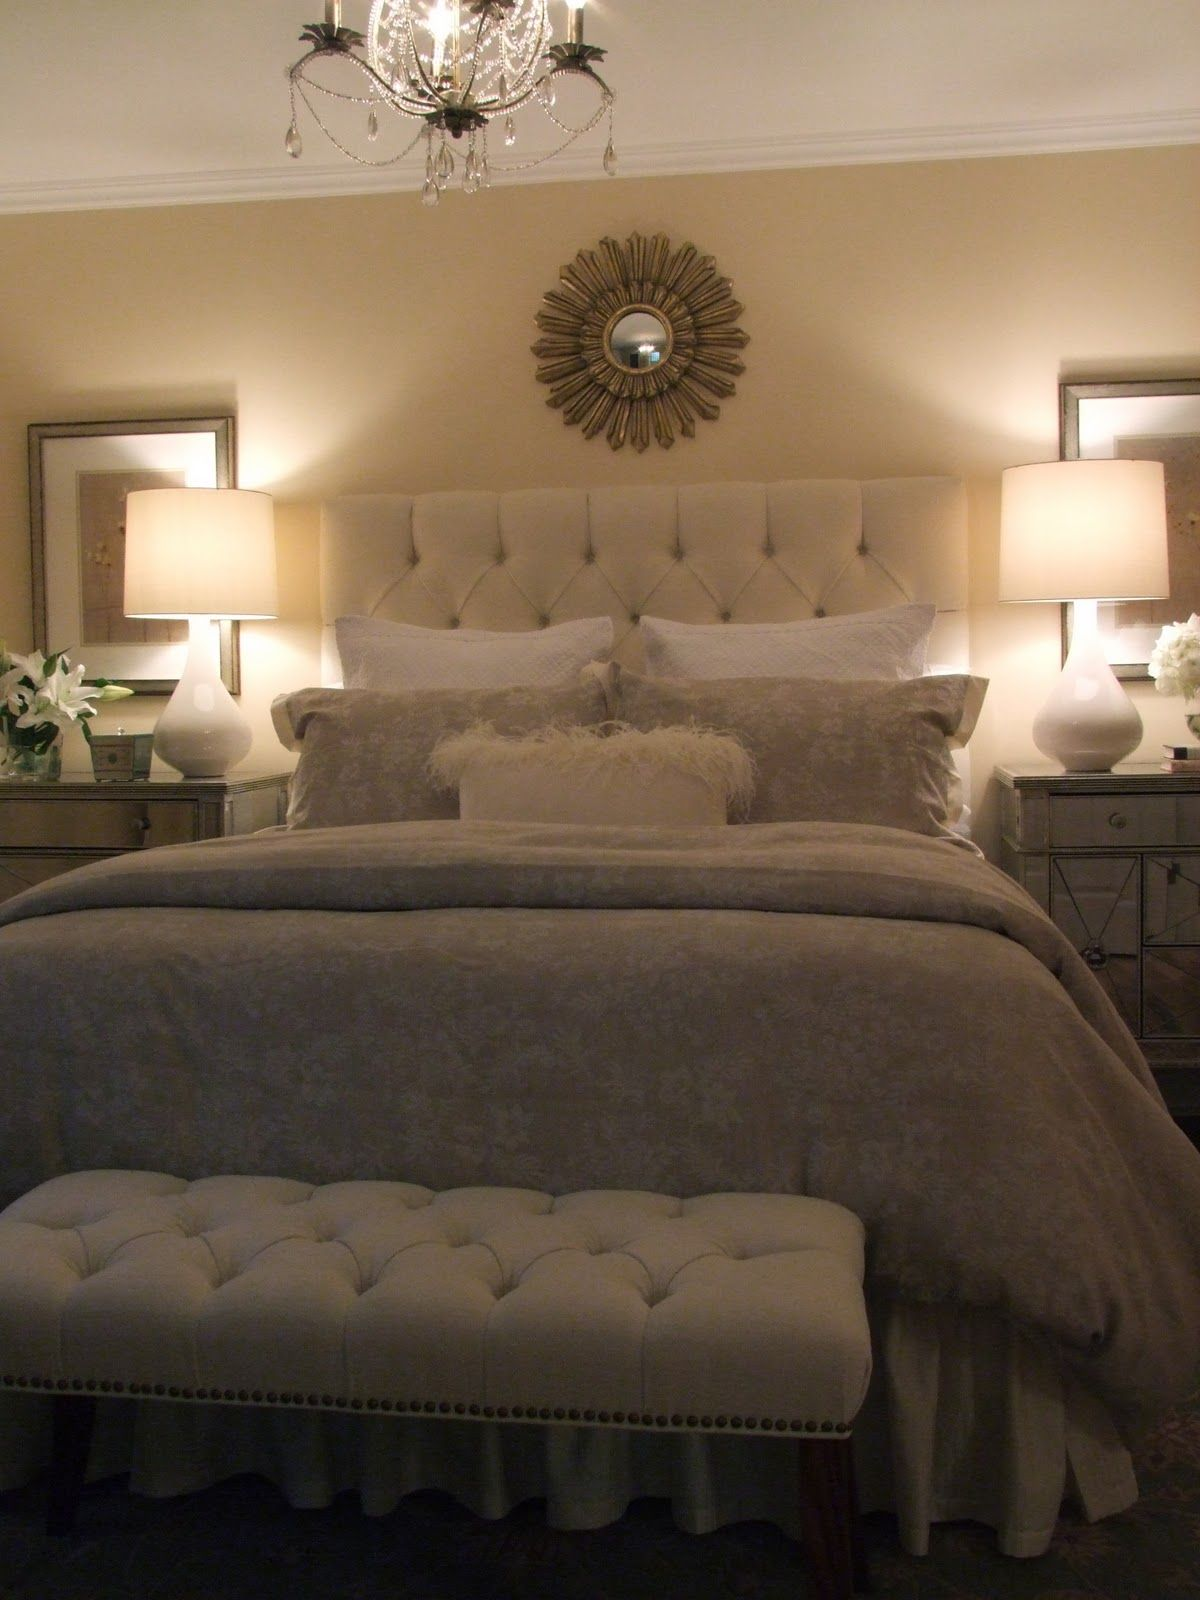 Mirrored Bedroom Bench Master Bedroom Gorgeous Love The Headboard Wanted A Big